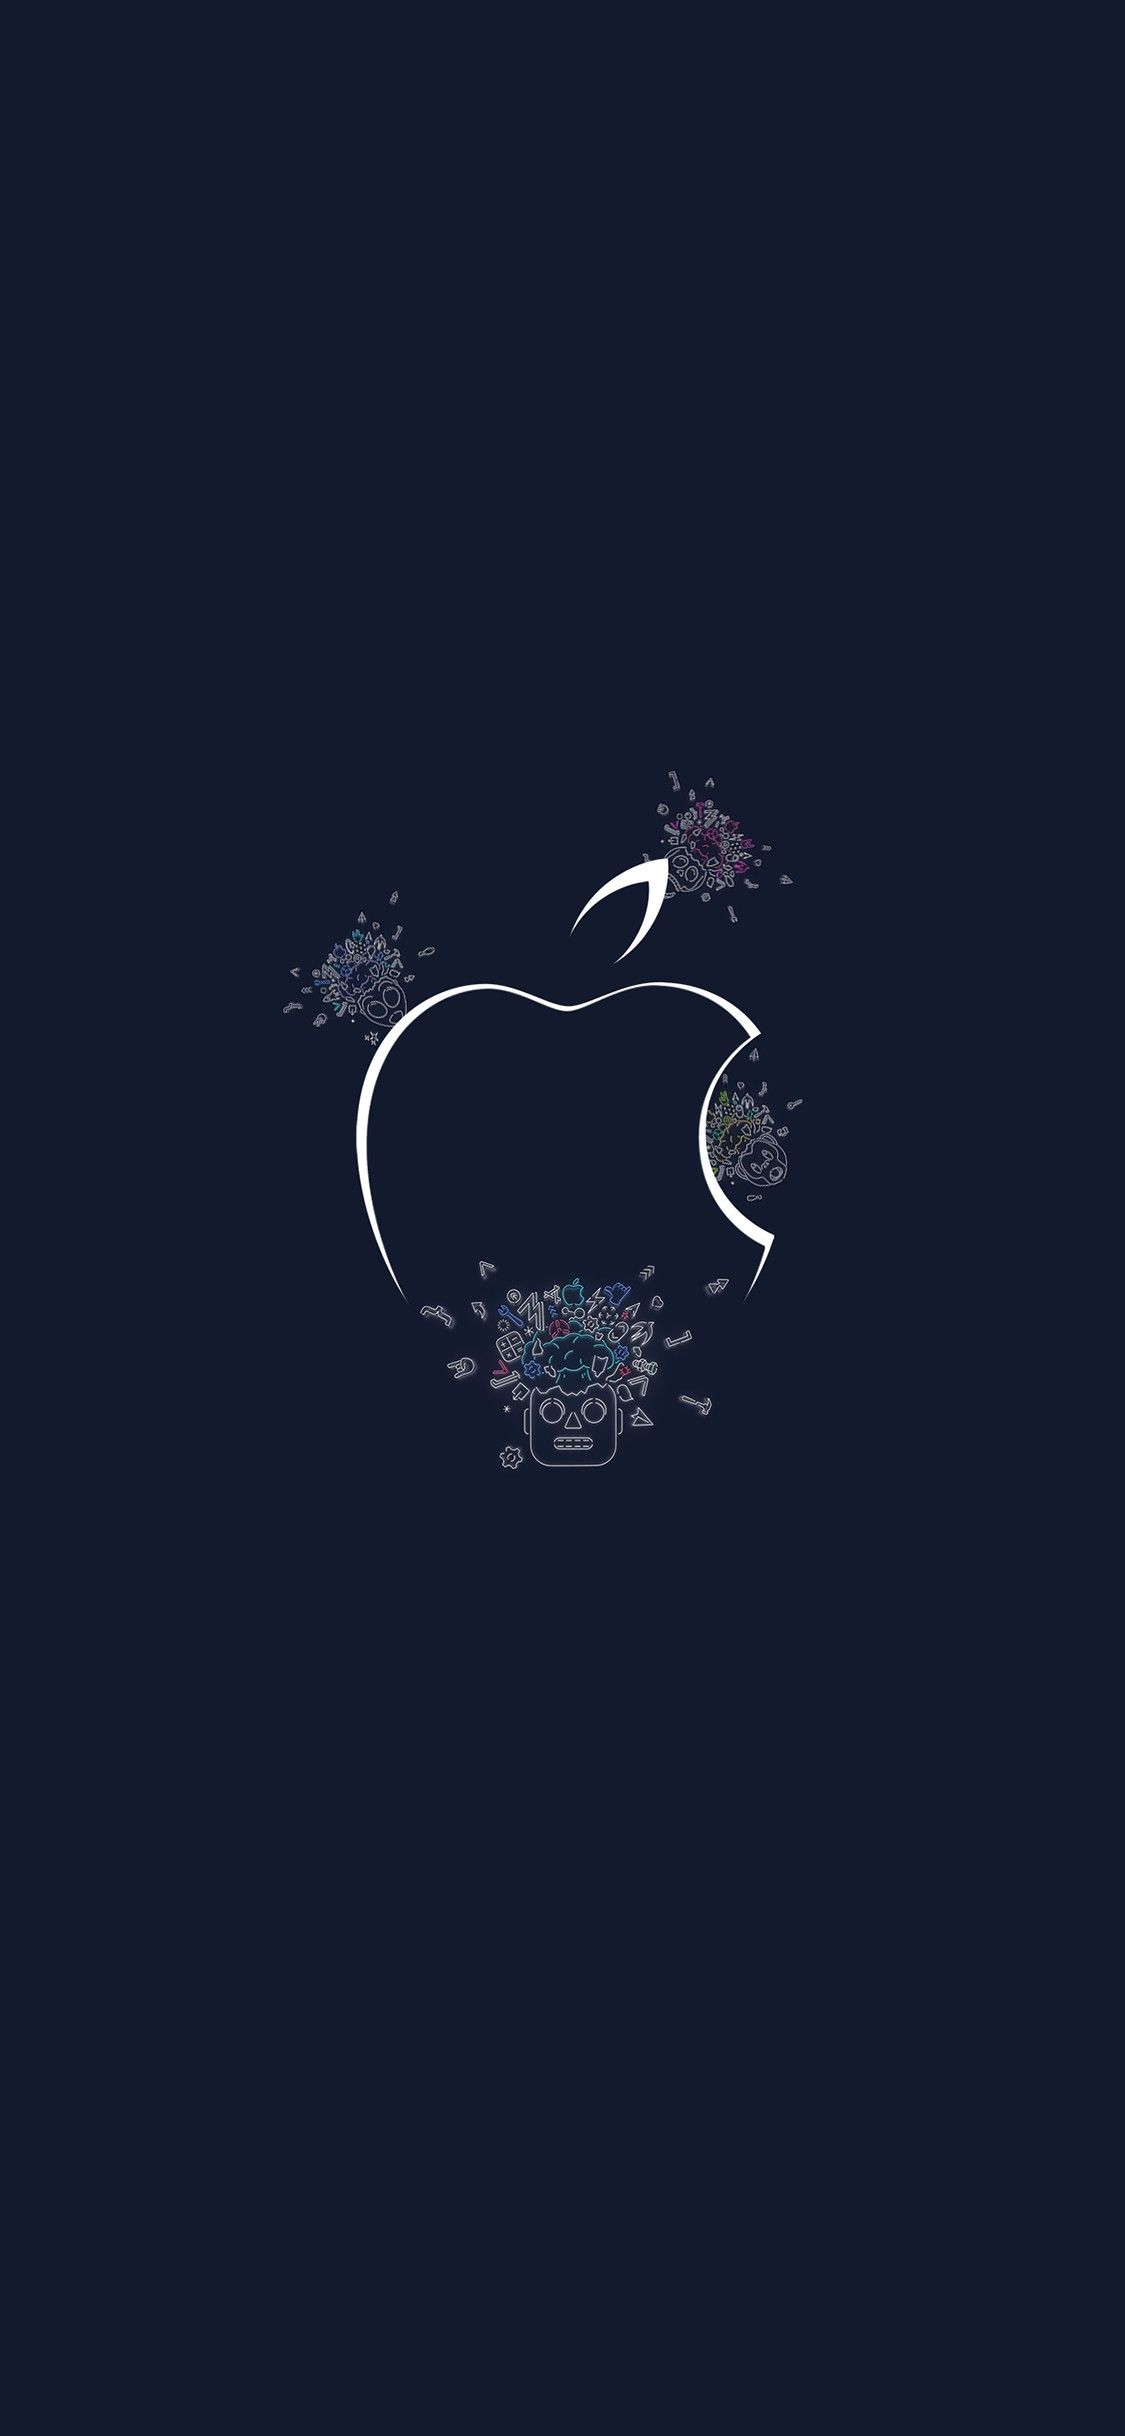 Elegant Apple Logo Wallpaper 4k For Iphone Wallpaper Iphone Wallpaper Ponsel Gambar